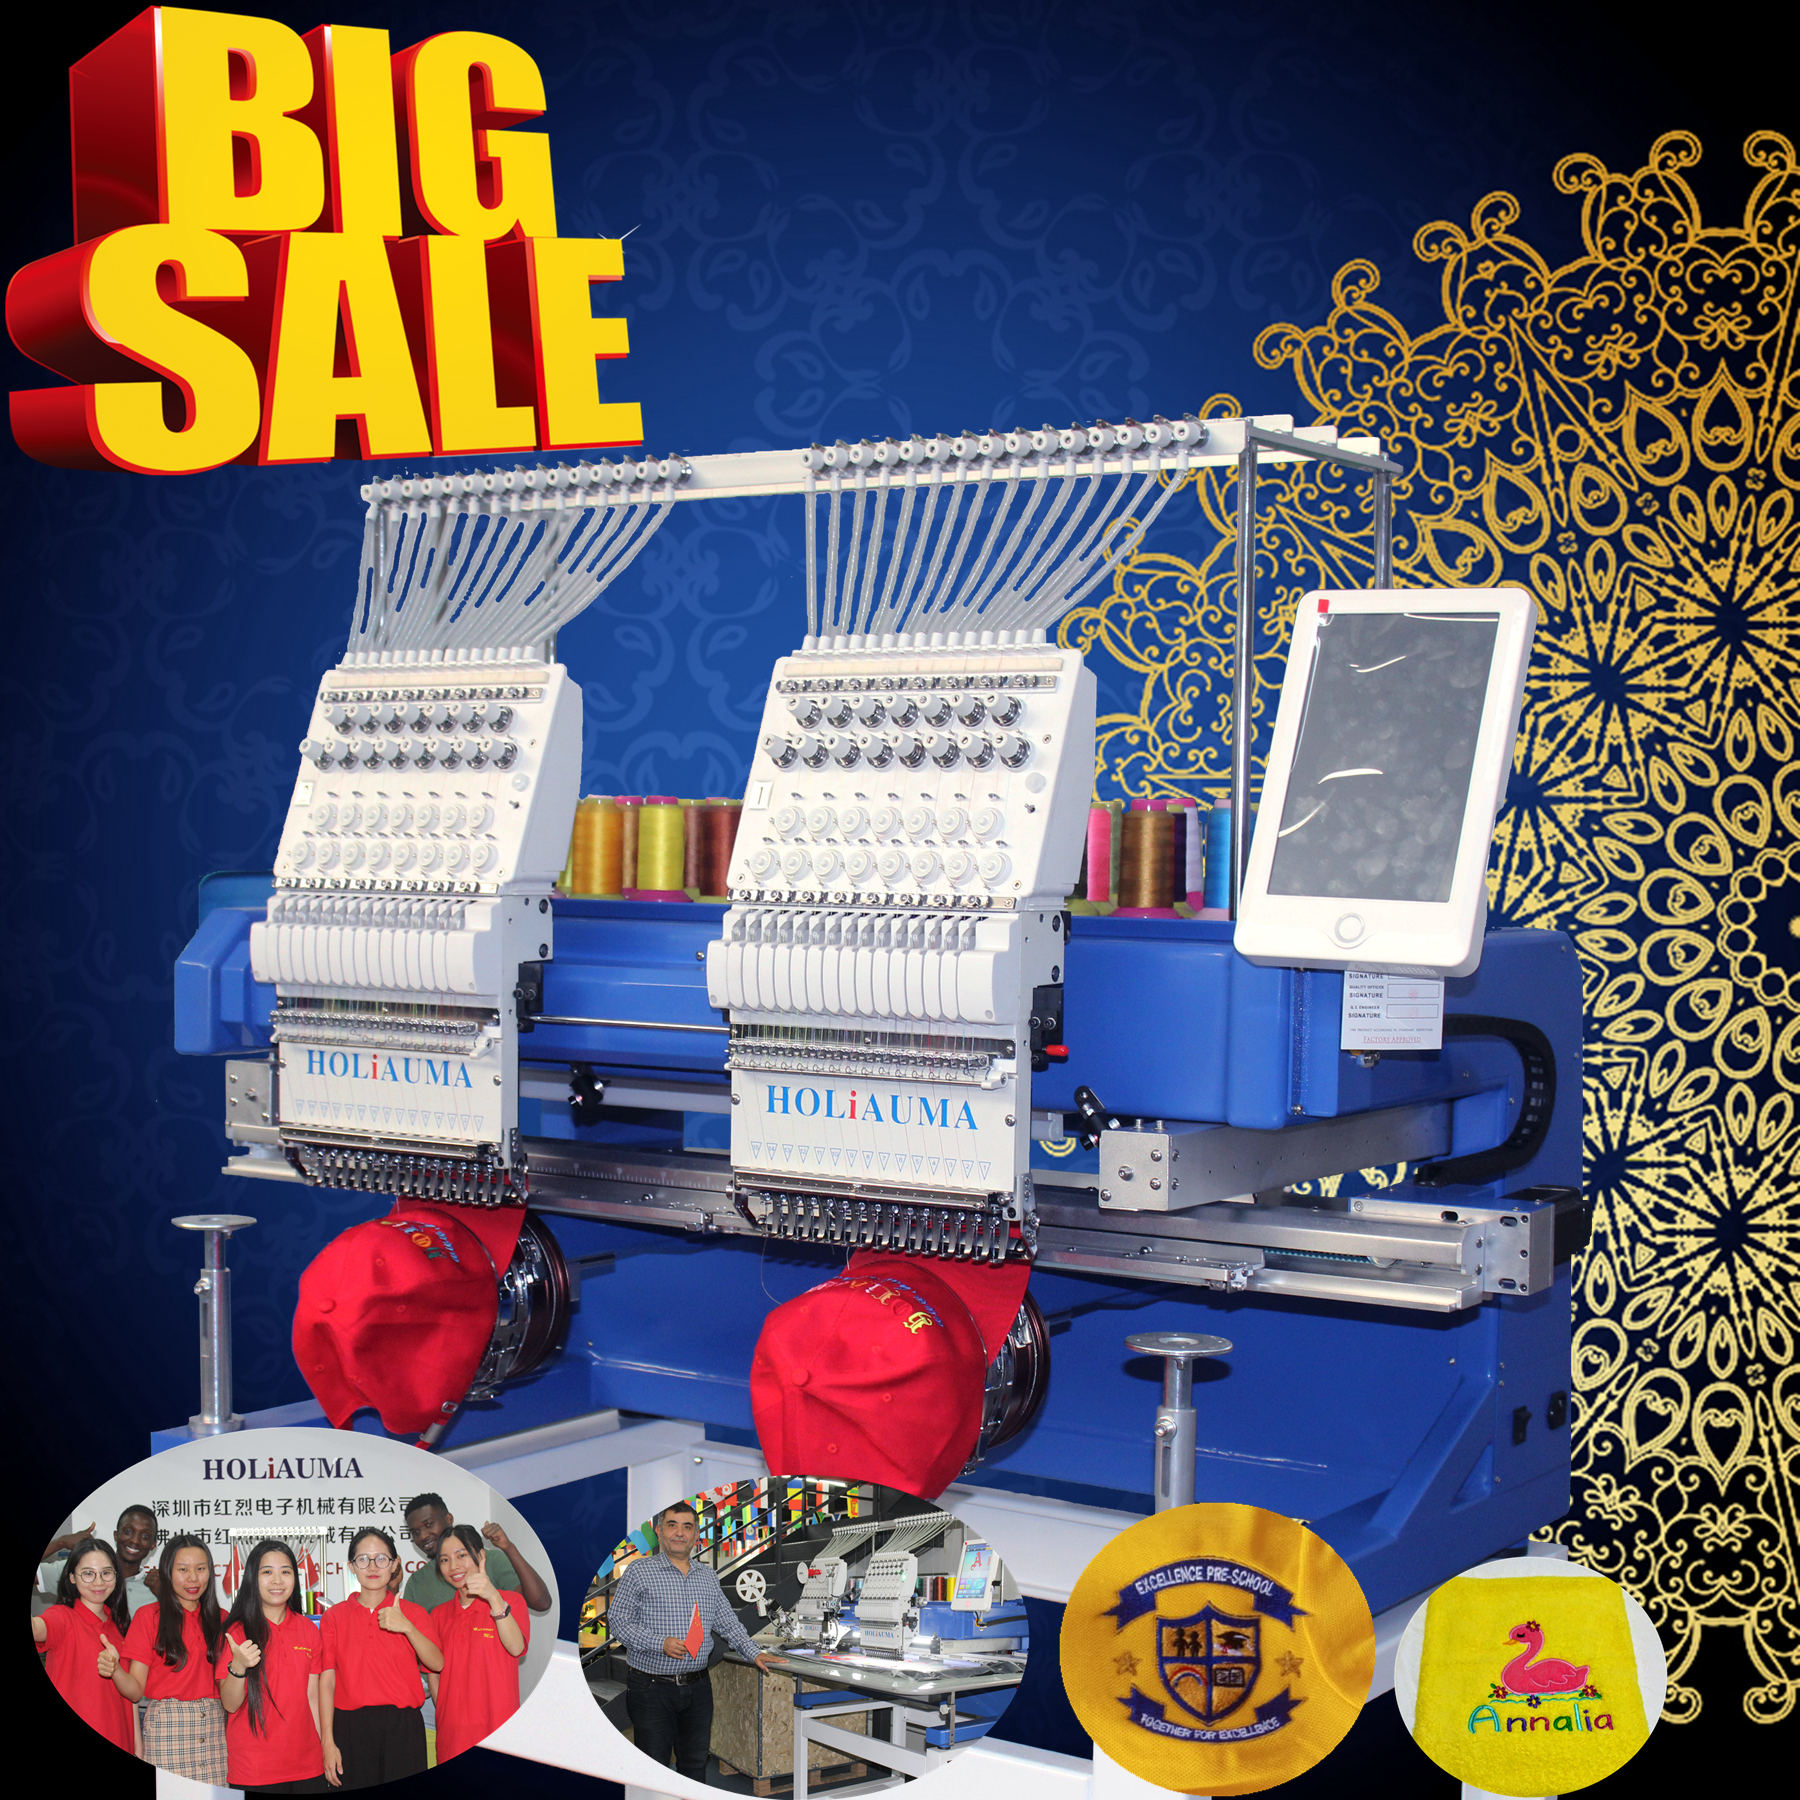 2 heads cheap embroidery machine for clothes caps shoes lace embroidery machine similar to taijima embroidery machine price